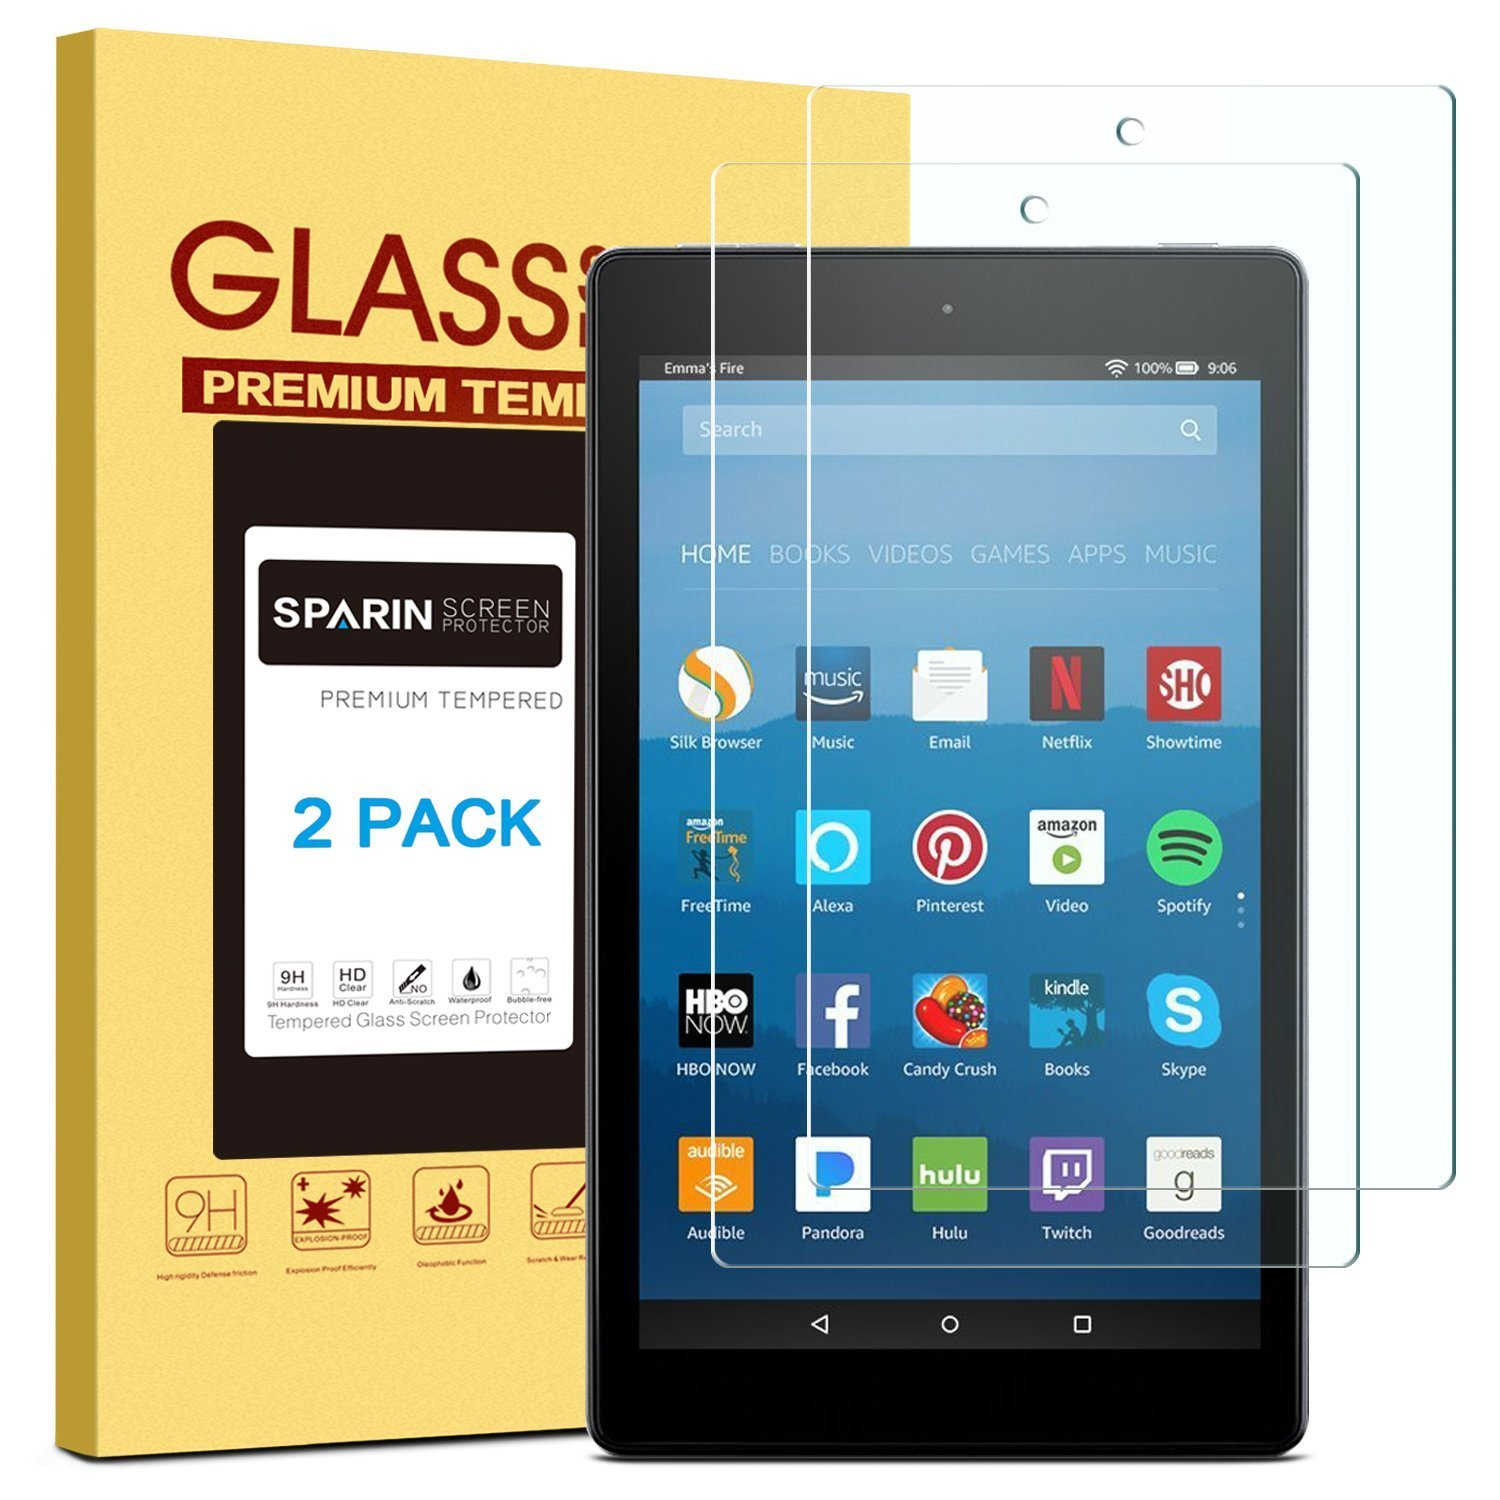 2 Pack Fire HD 10 Kids Edition SPARIN Tempered Glass Screen Protector with Scratch Resistant//Easy Install for All-New Fire HD 10 Fire HD 10 Screen Protector